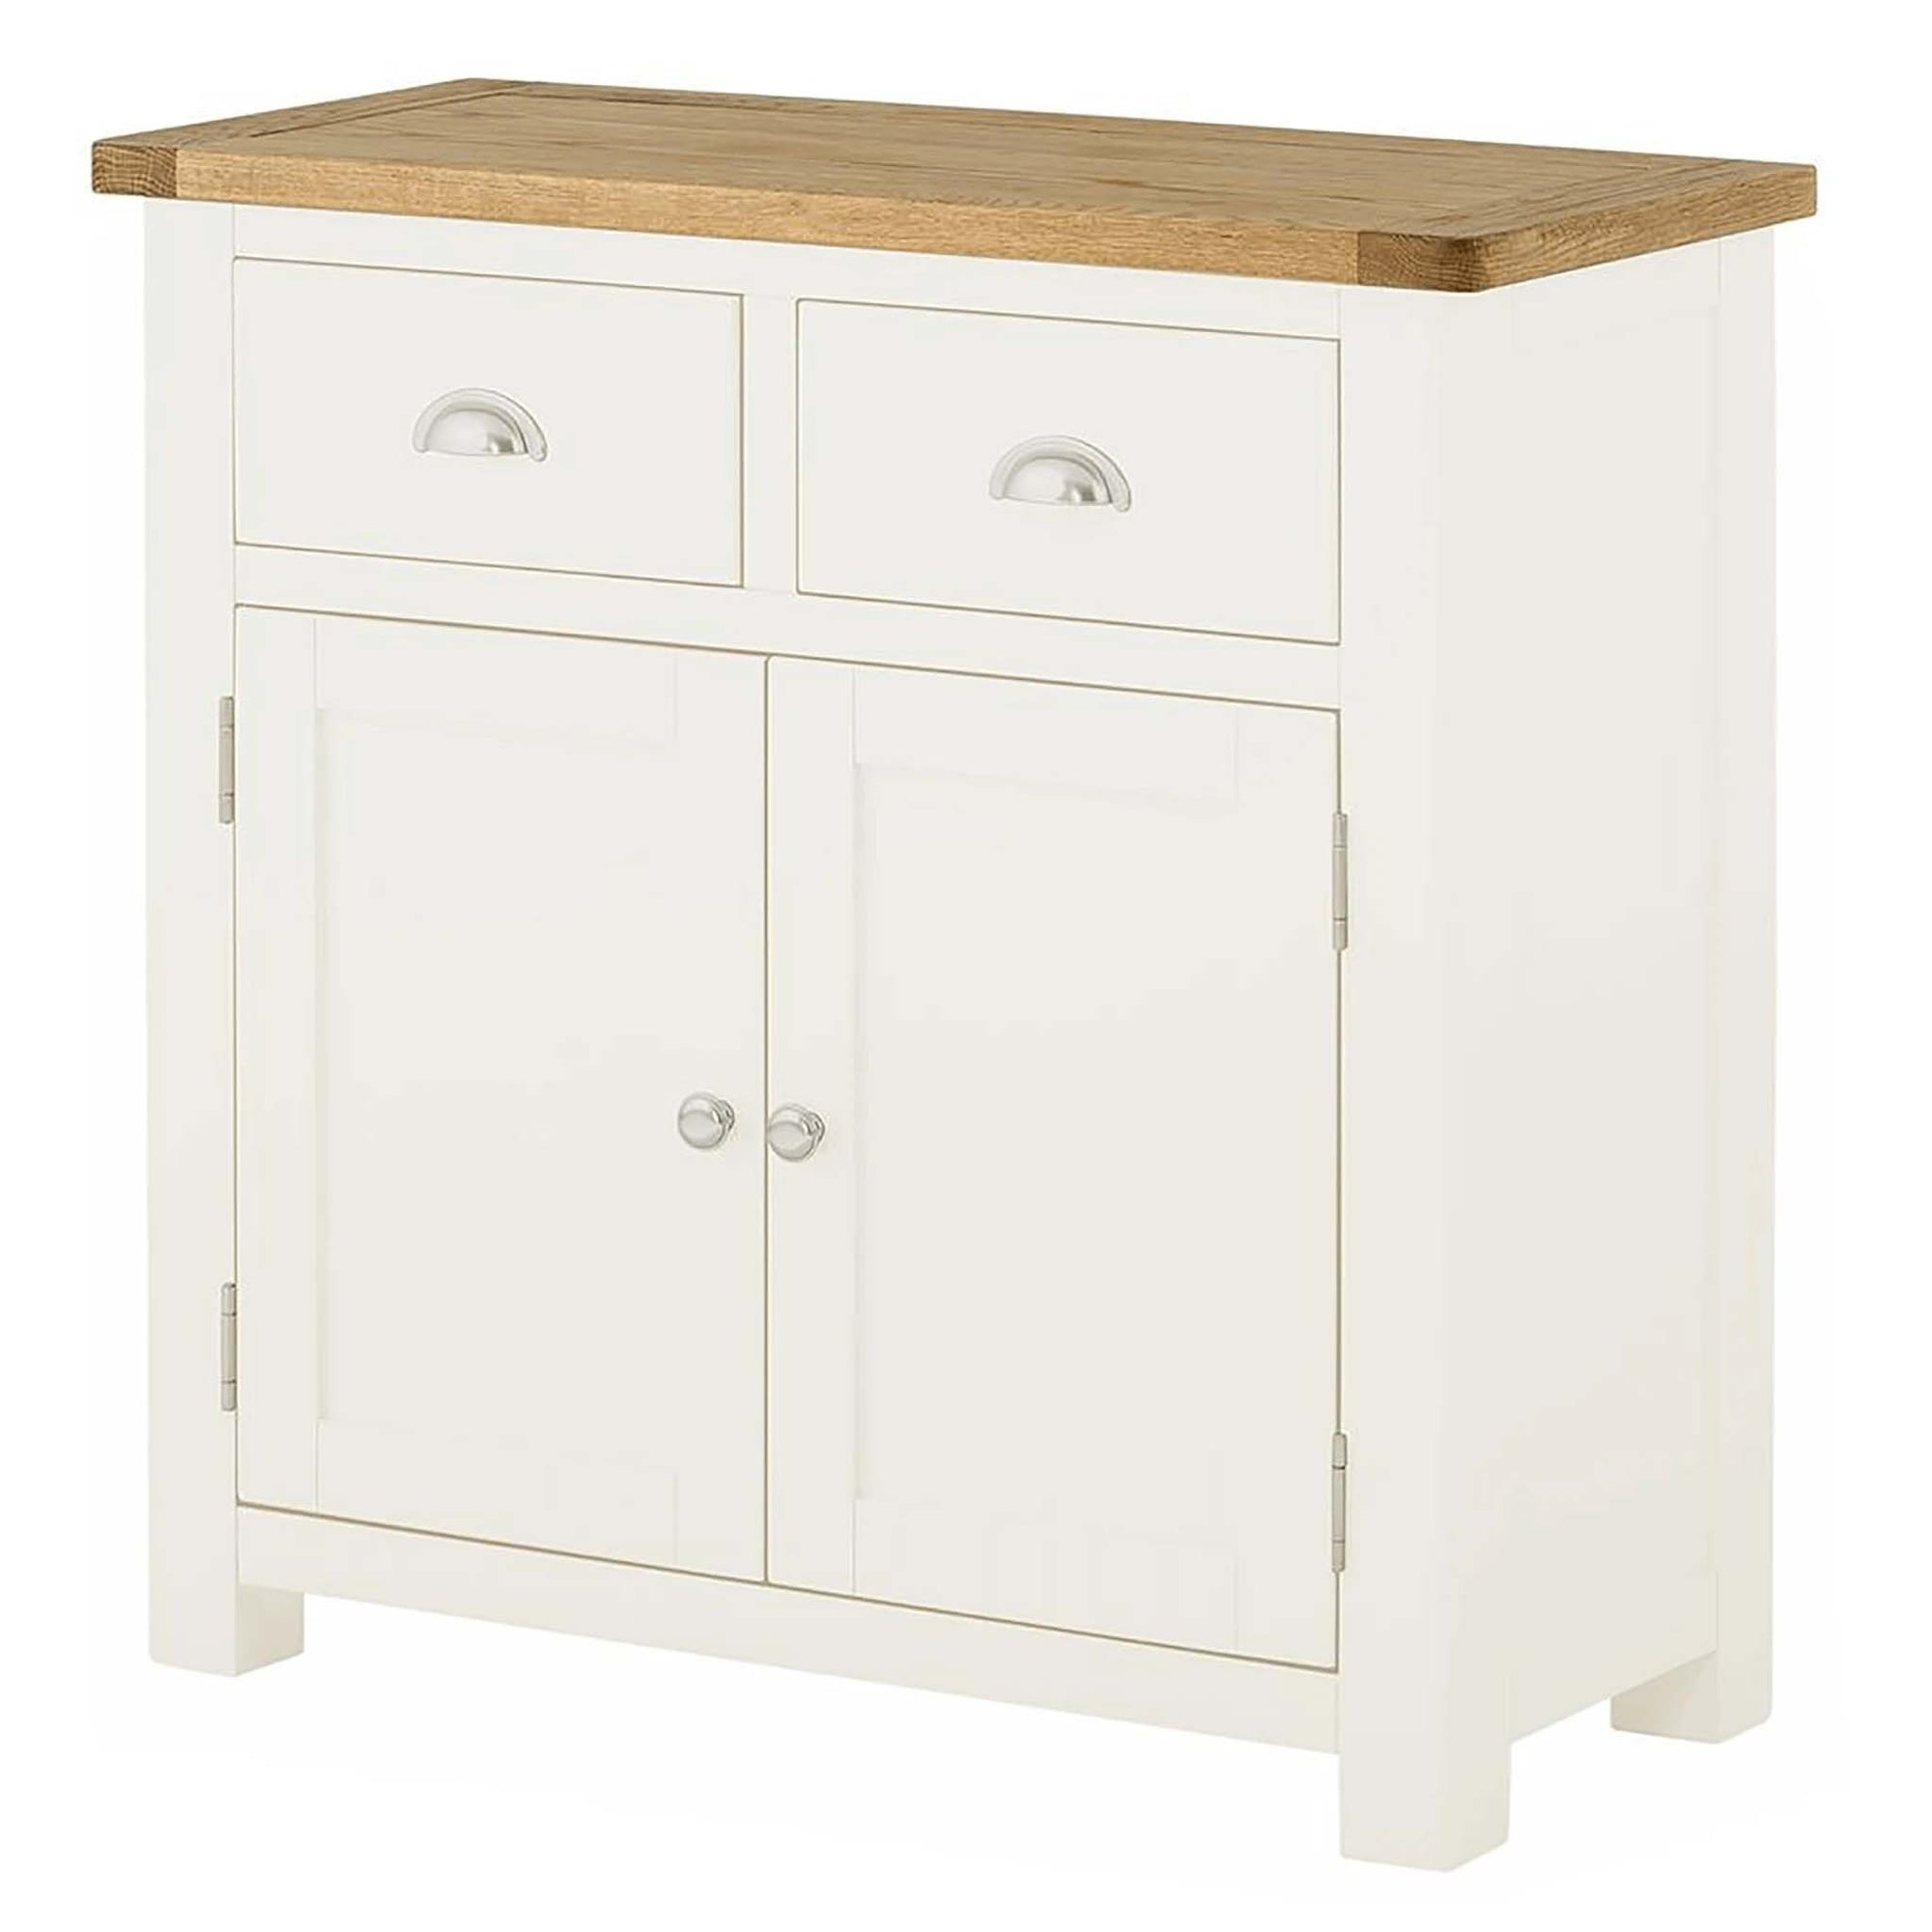 The Padstow White Small Wooden Sideboard with 2 Drawers